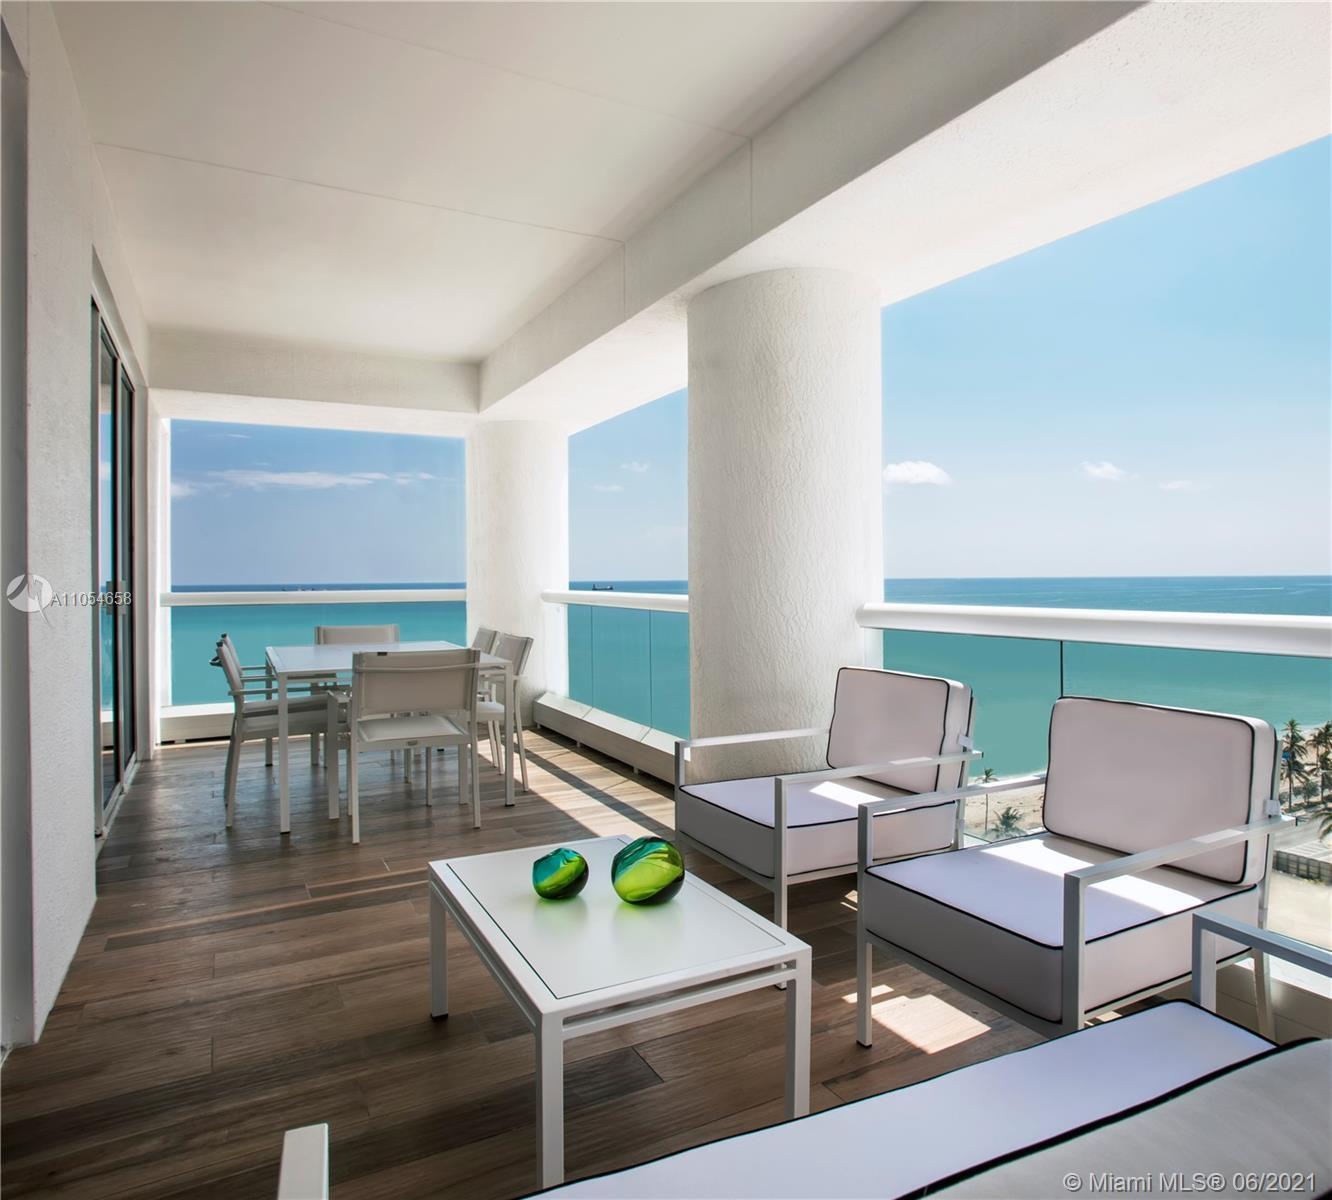 Luxurious Resort Residences, presented as hotel/condos, professionally designed & fully furnished by